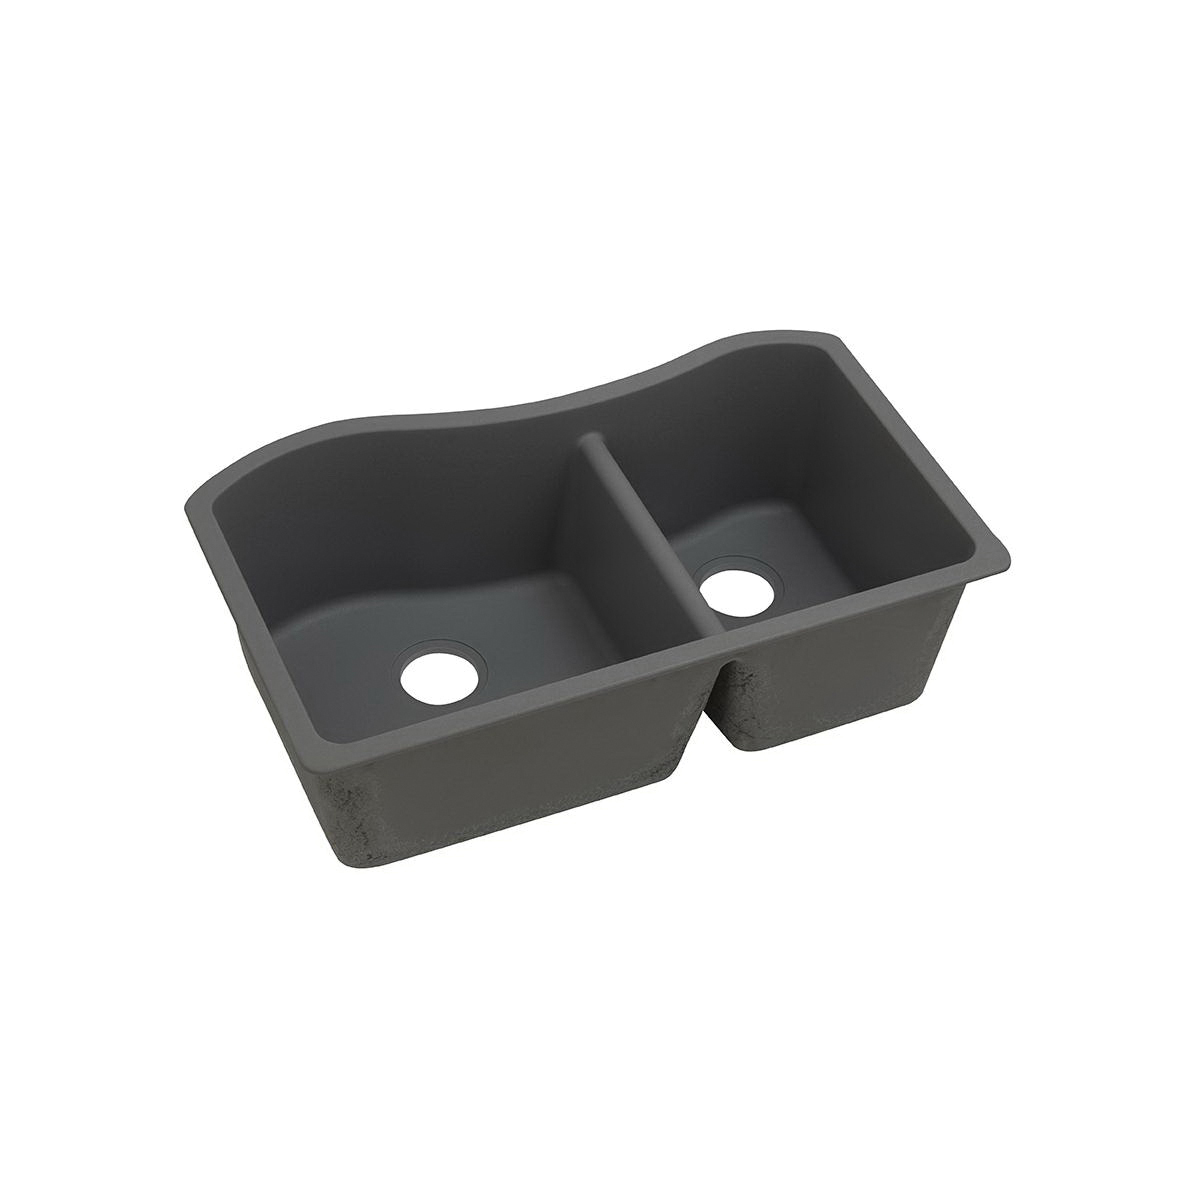 Elkay® ELGHU3220RGY0 Classic Traditional Kitchen Sink, Rectangular, 20 in W x 10 in H, Under Mount, Quartz, Dusk Gray, Import